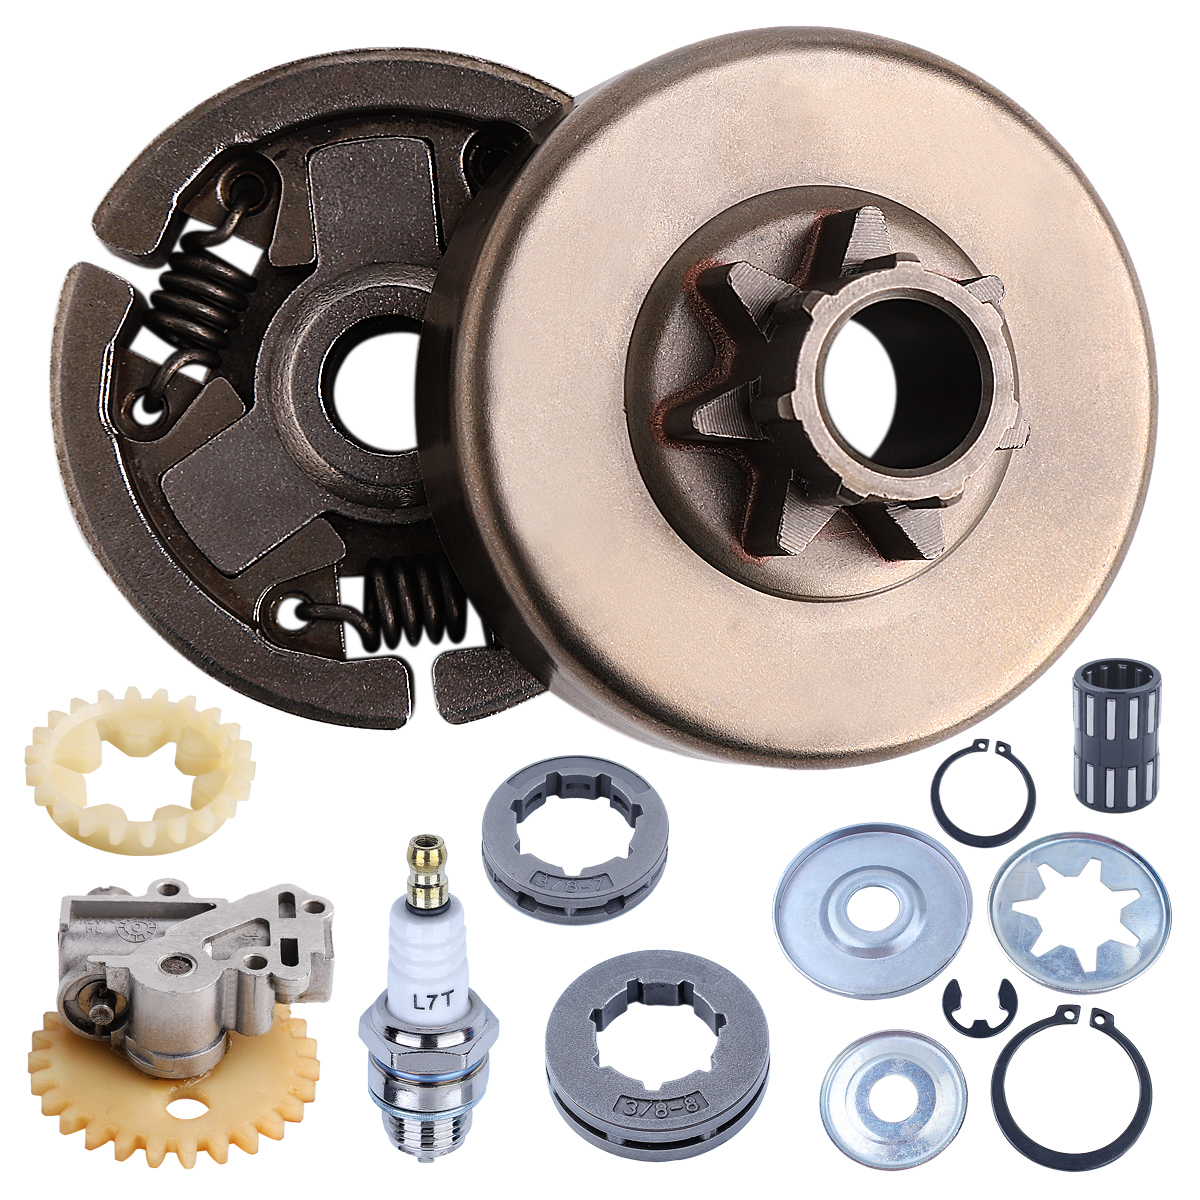 Clutch Drum Assy 3/8'' 7T 8T Sprocket Rim Oil Pump Washer Repair Kit For Stihl 038 038AV MS380 MS381 Chainsaw w Needle Bearing